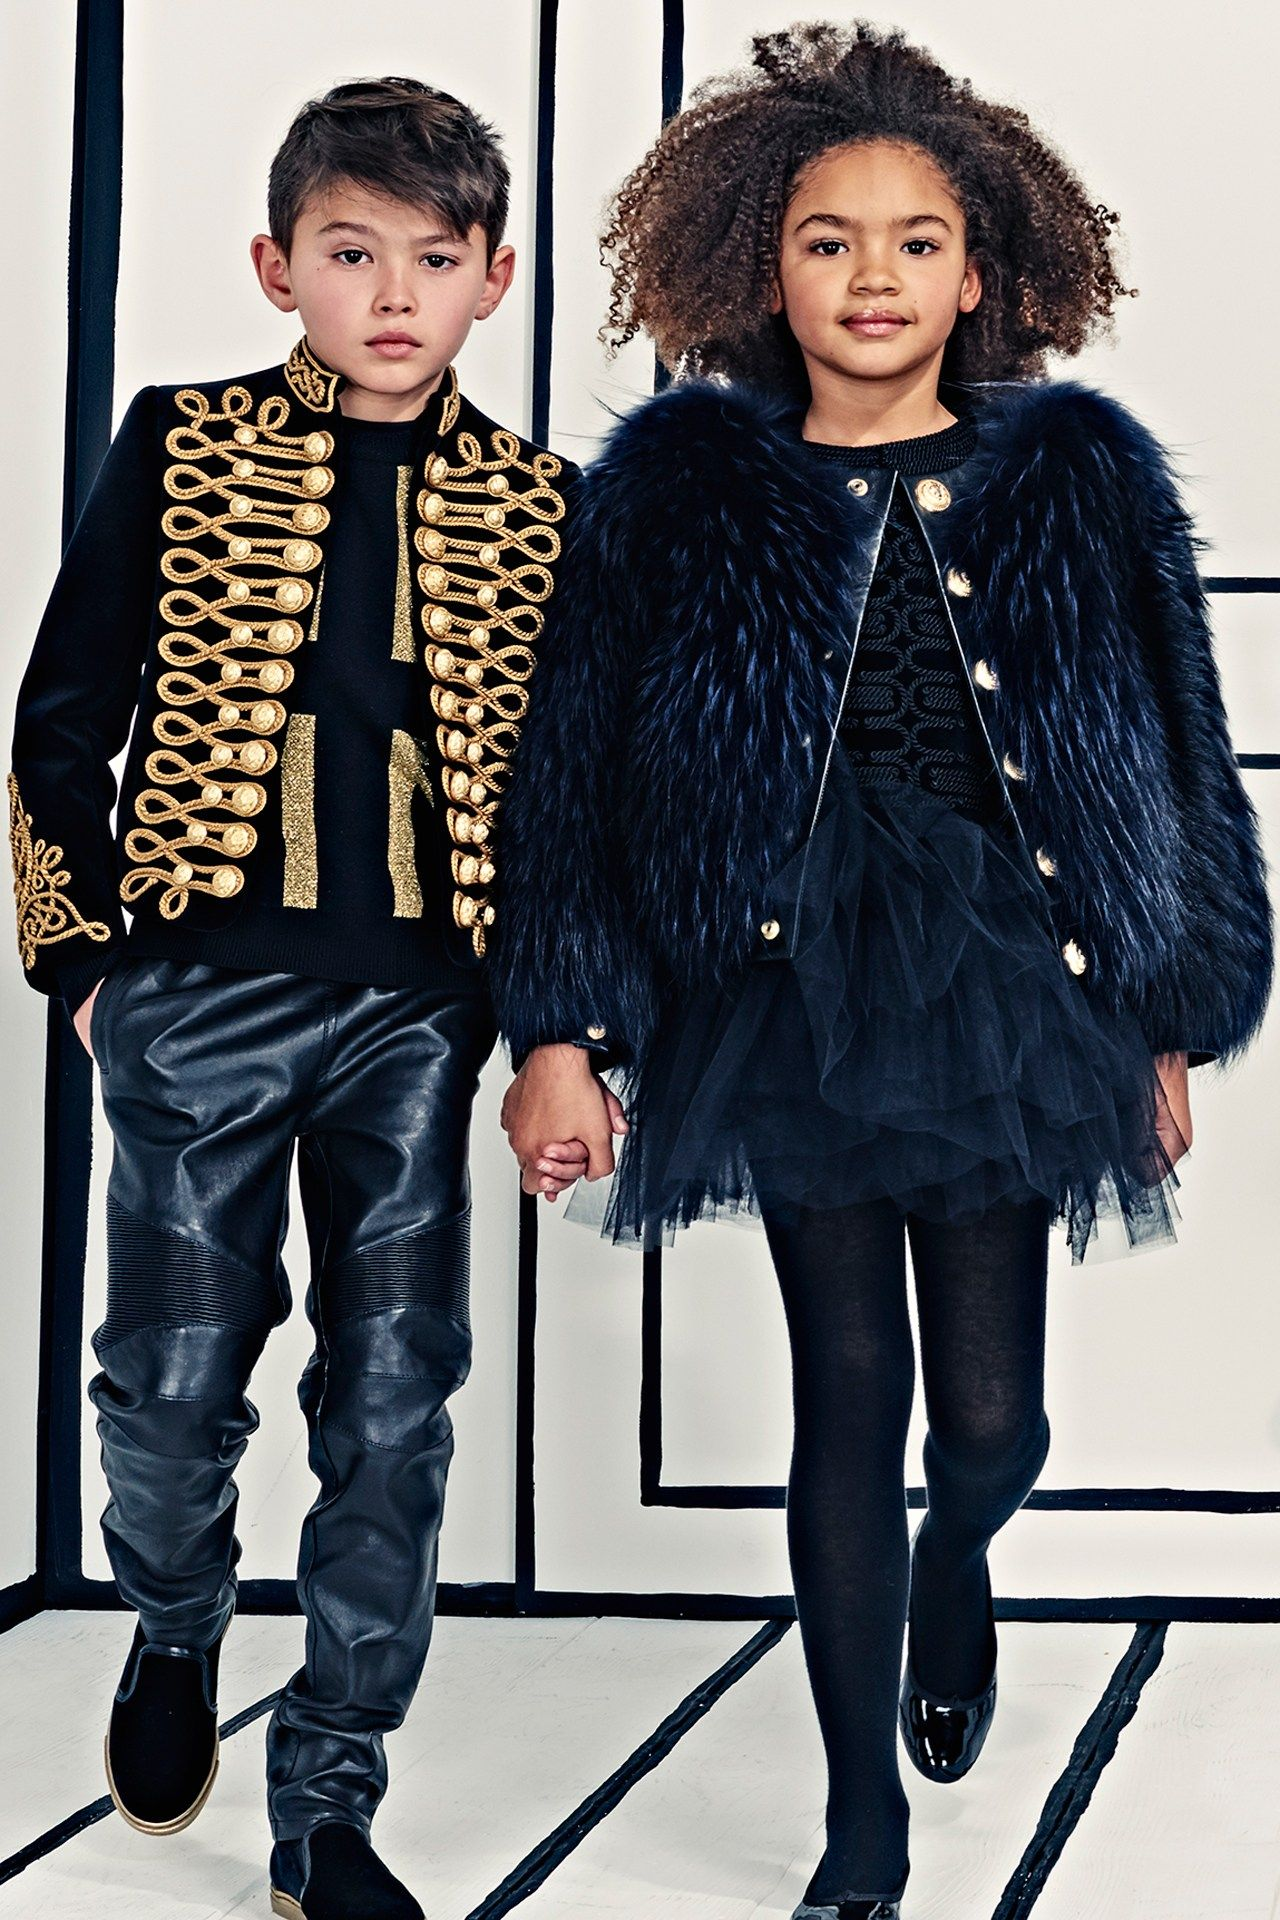 The one on the search for his biological parents, much less. FIRST LOOK: Balmain's Kids Collection | Childrenswear ...